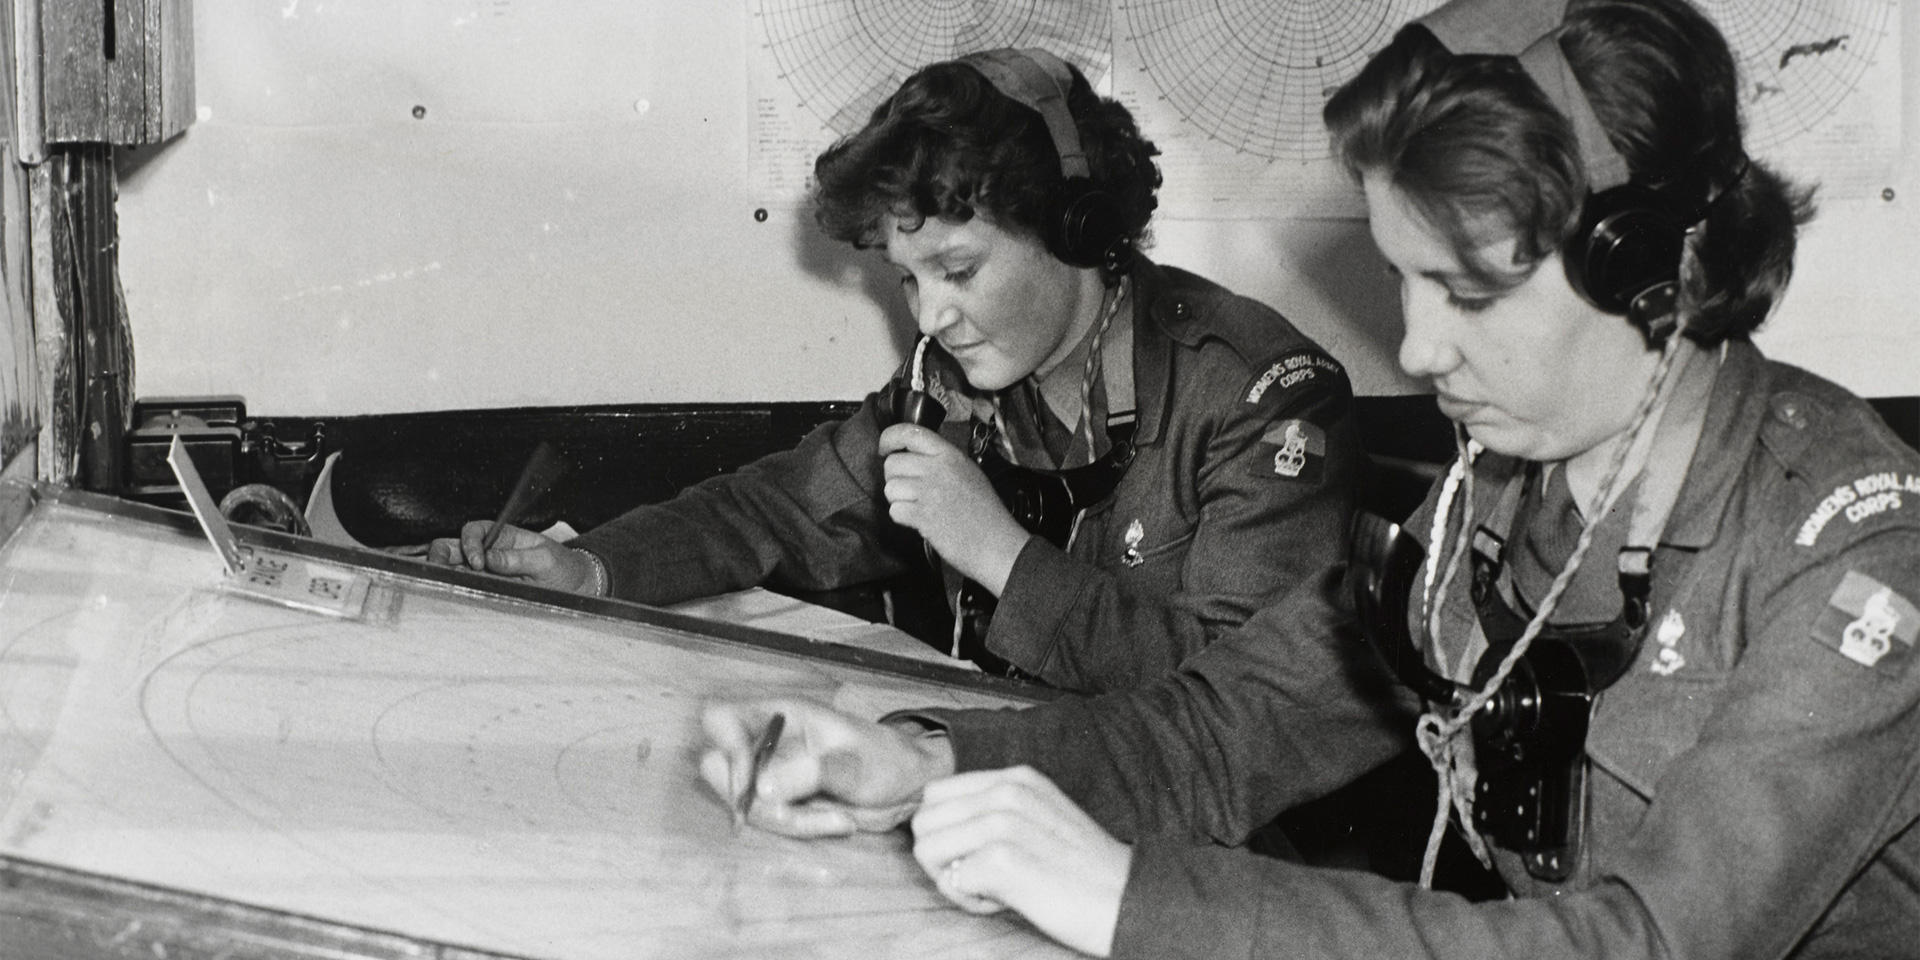 Members of the Women's Royal Army Corps